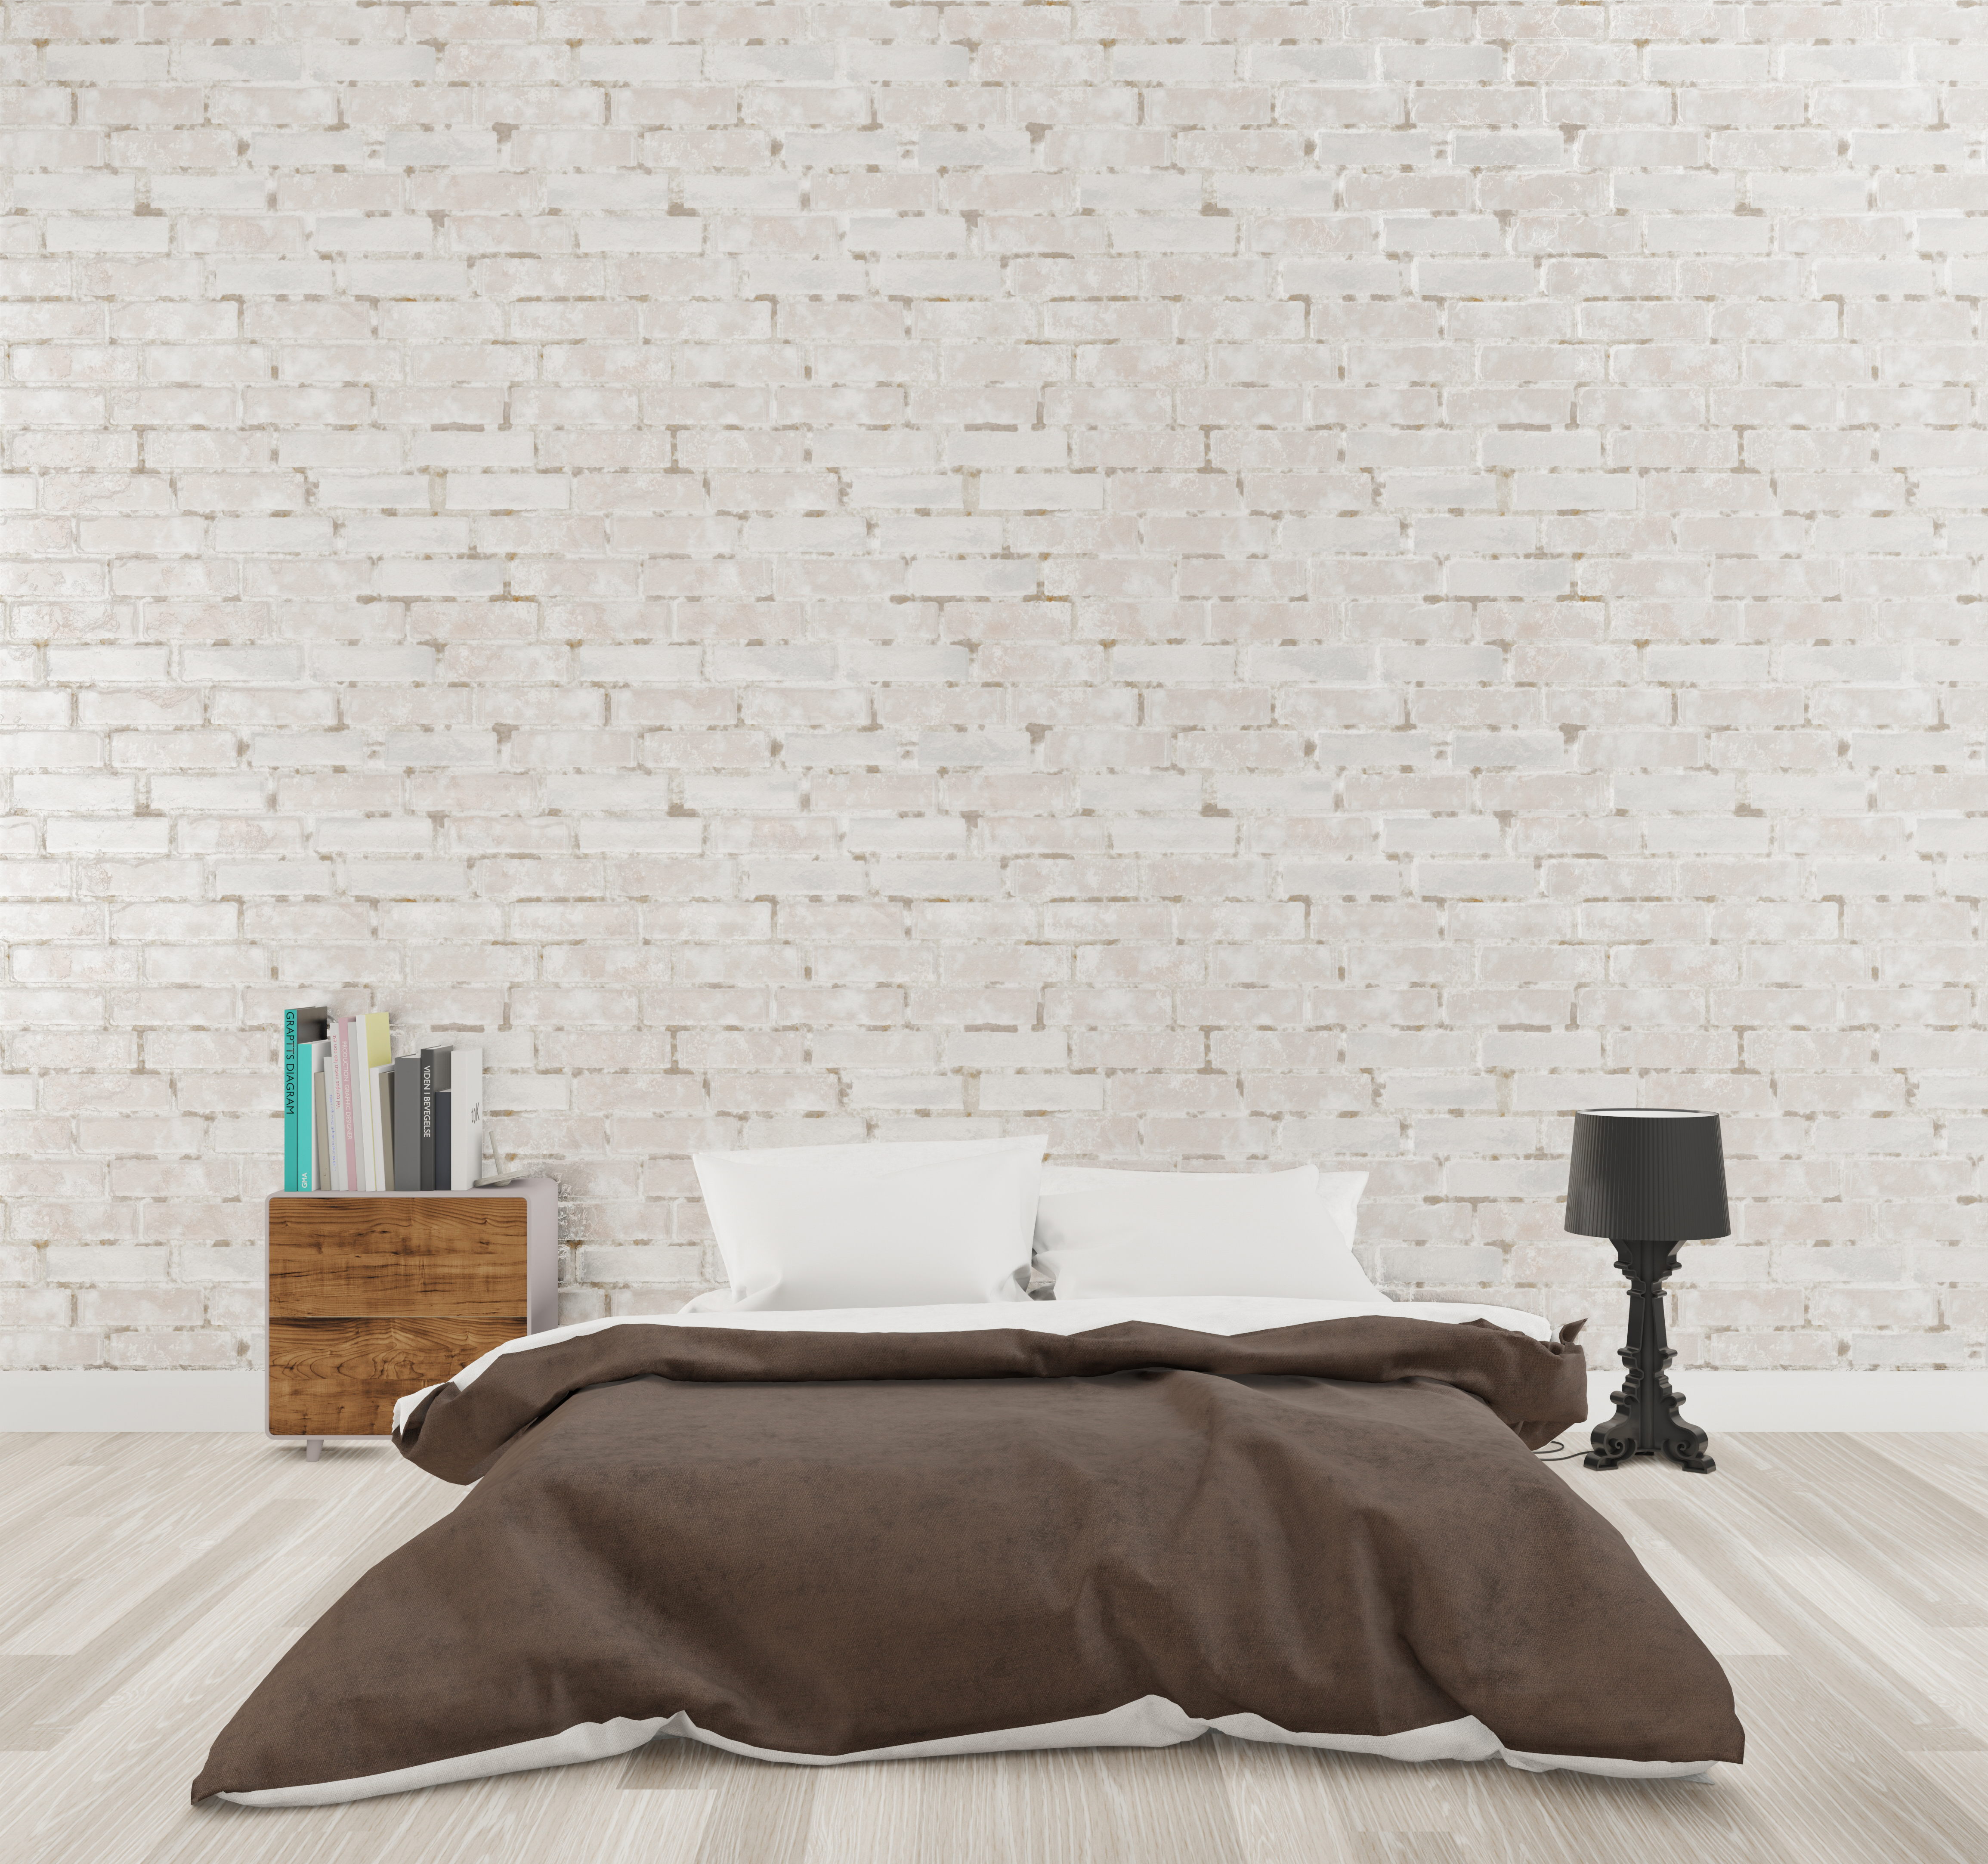 Loft style bedroom with white brick wall